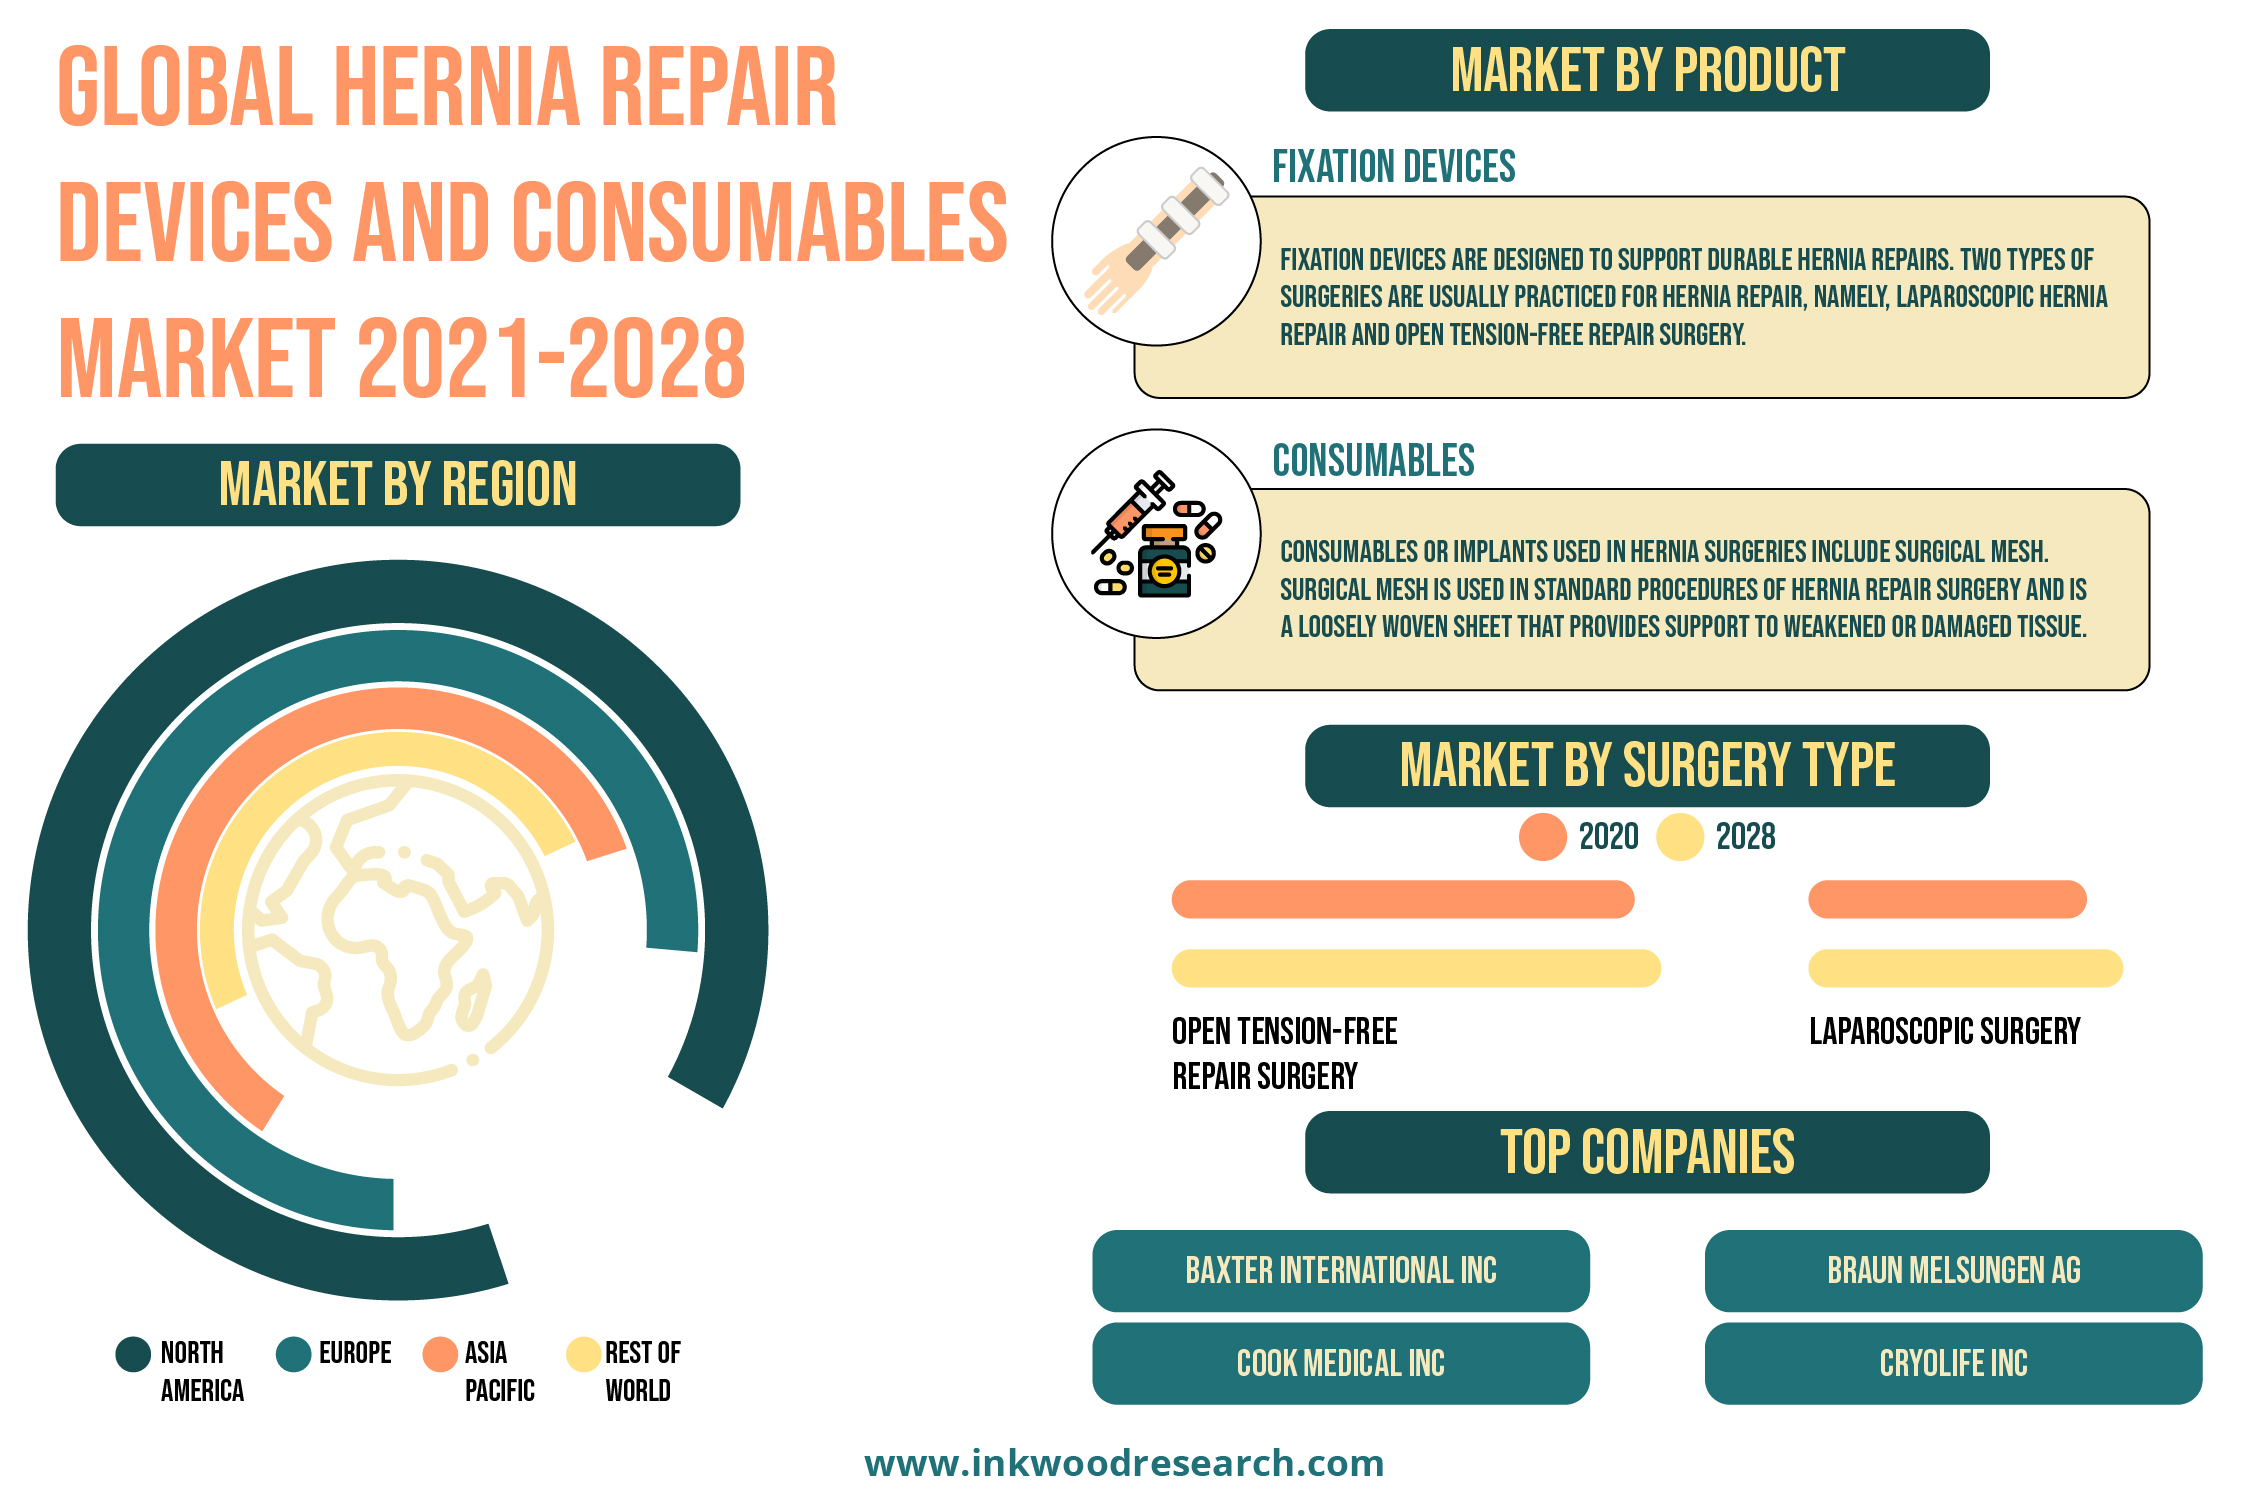 Acceptance for Robotic Surgeries is boosting the Global Hernia Repair Devices and Consumables Market